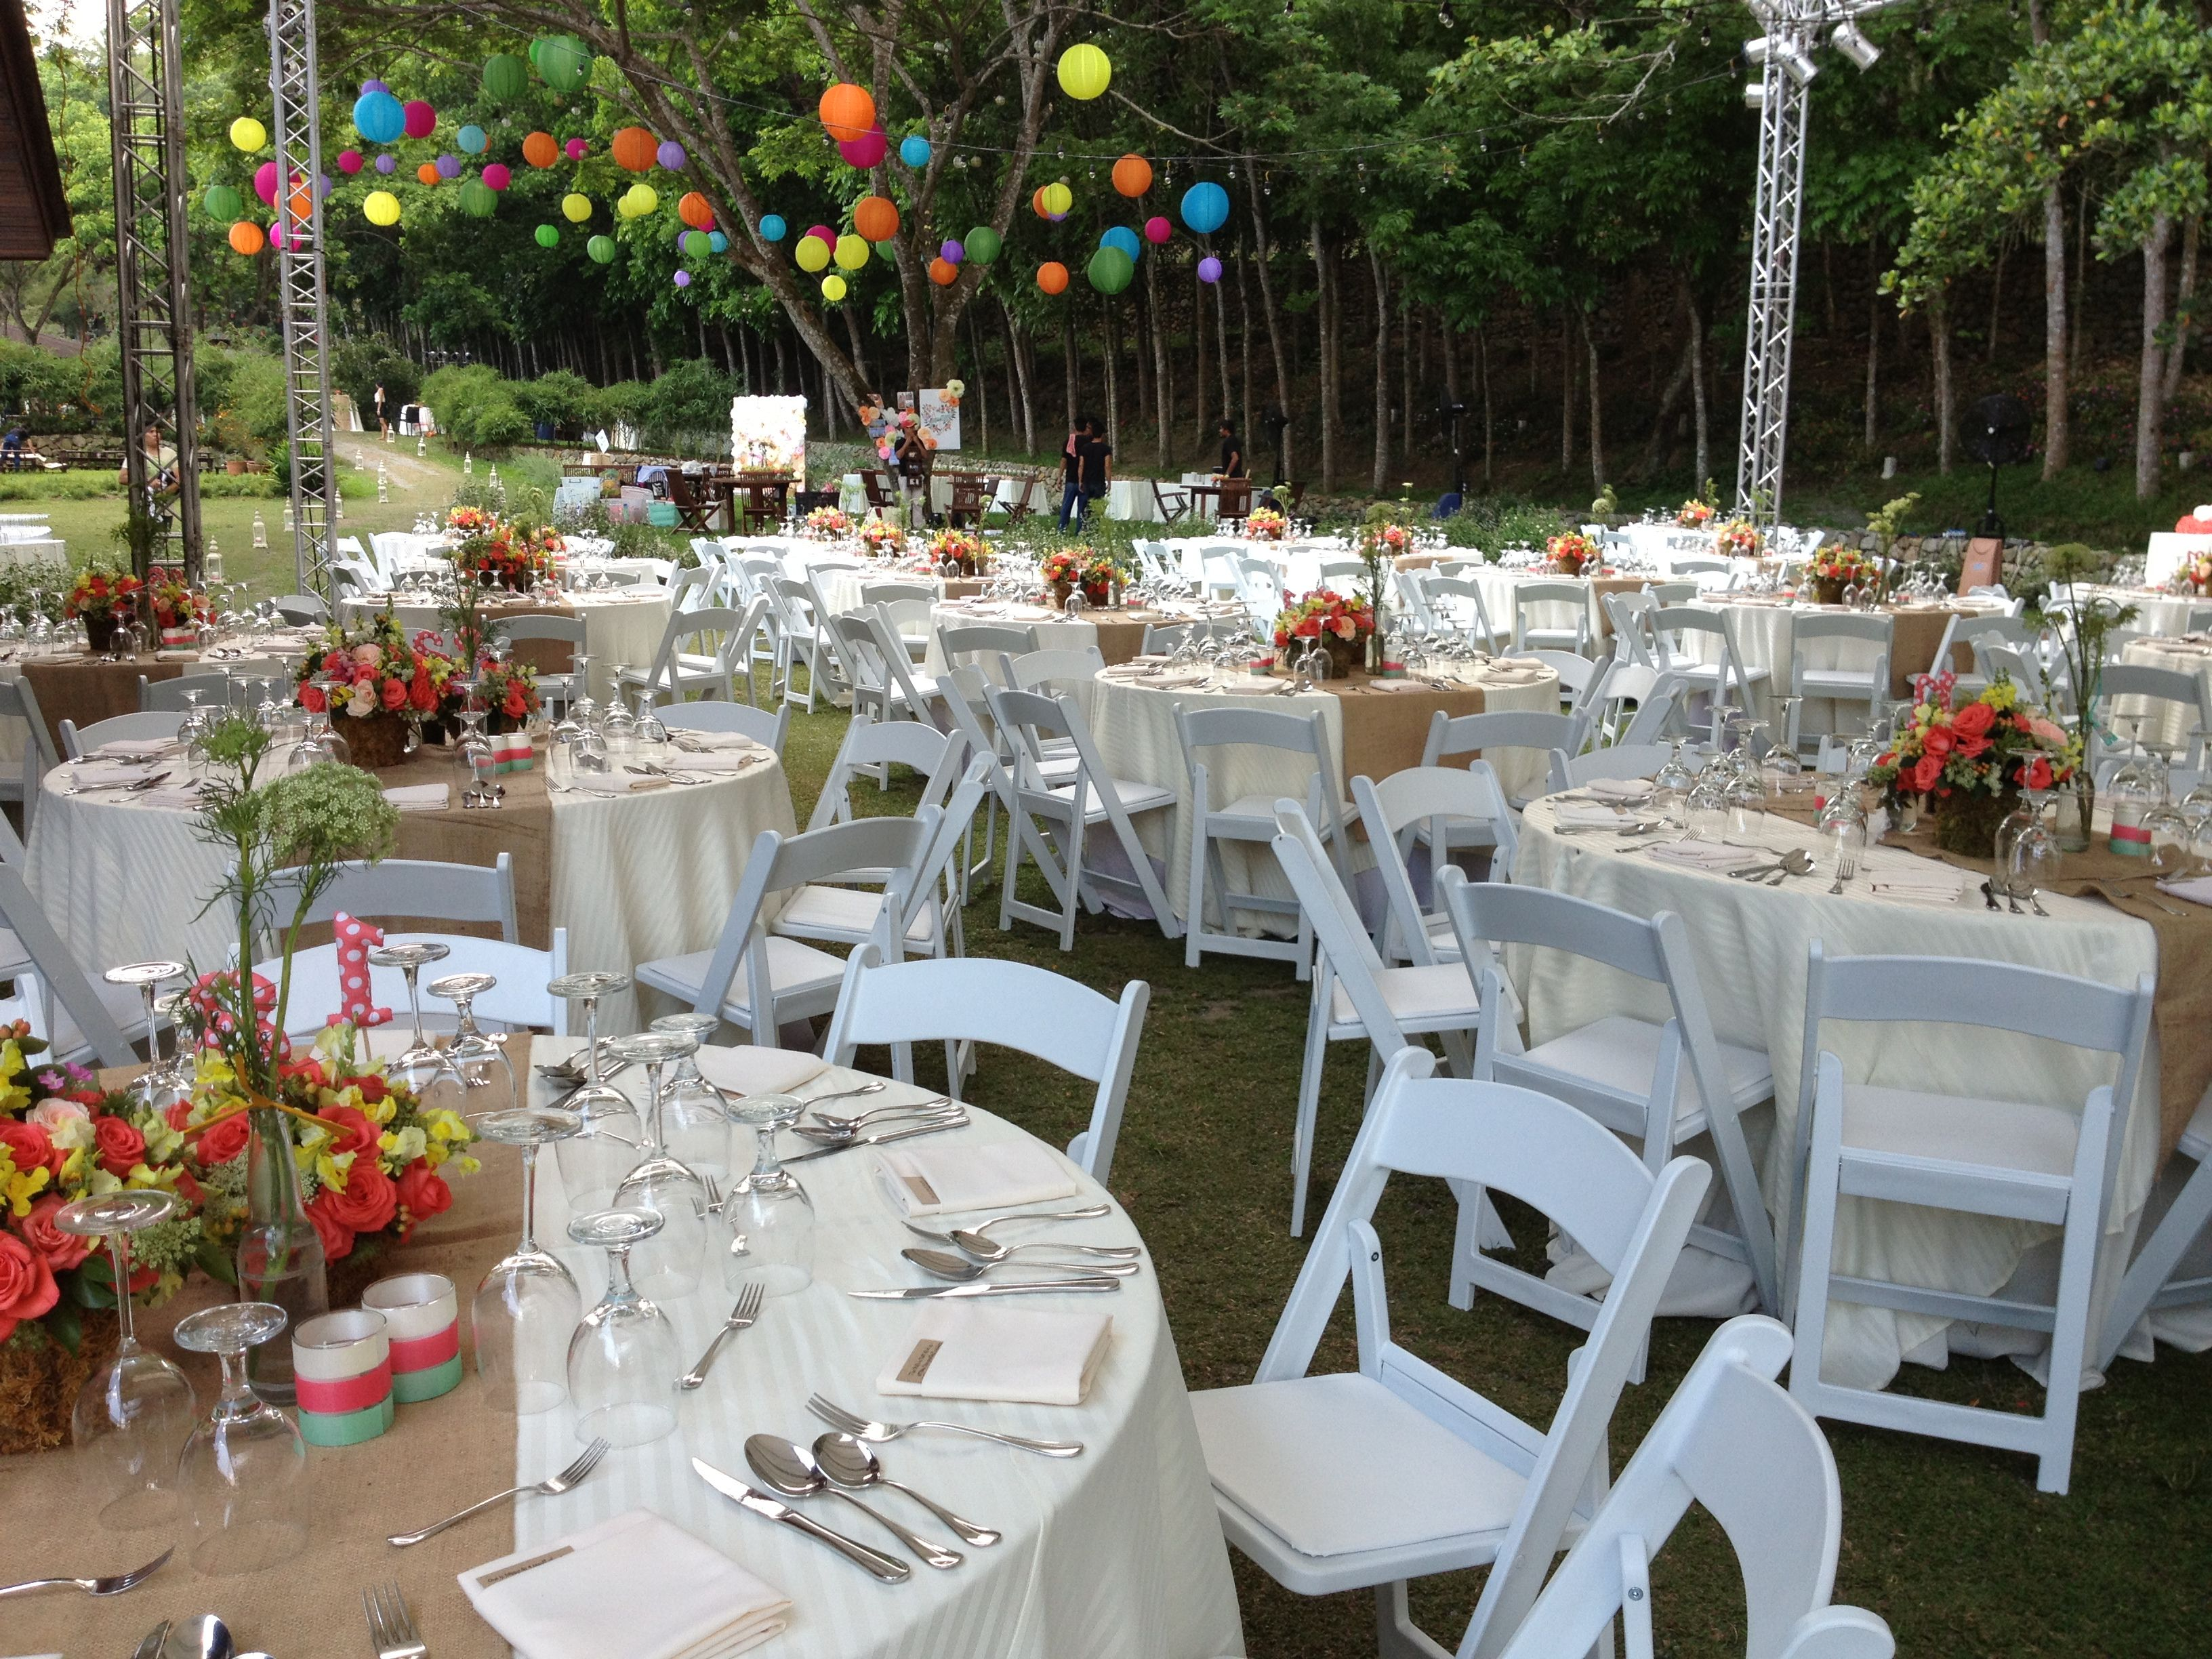 Reserv s White Folding Chairs at wedding held at Angelfields in